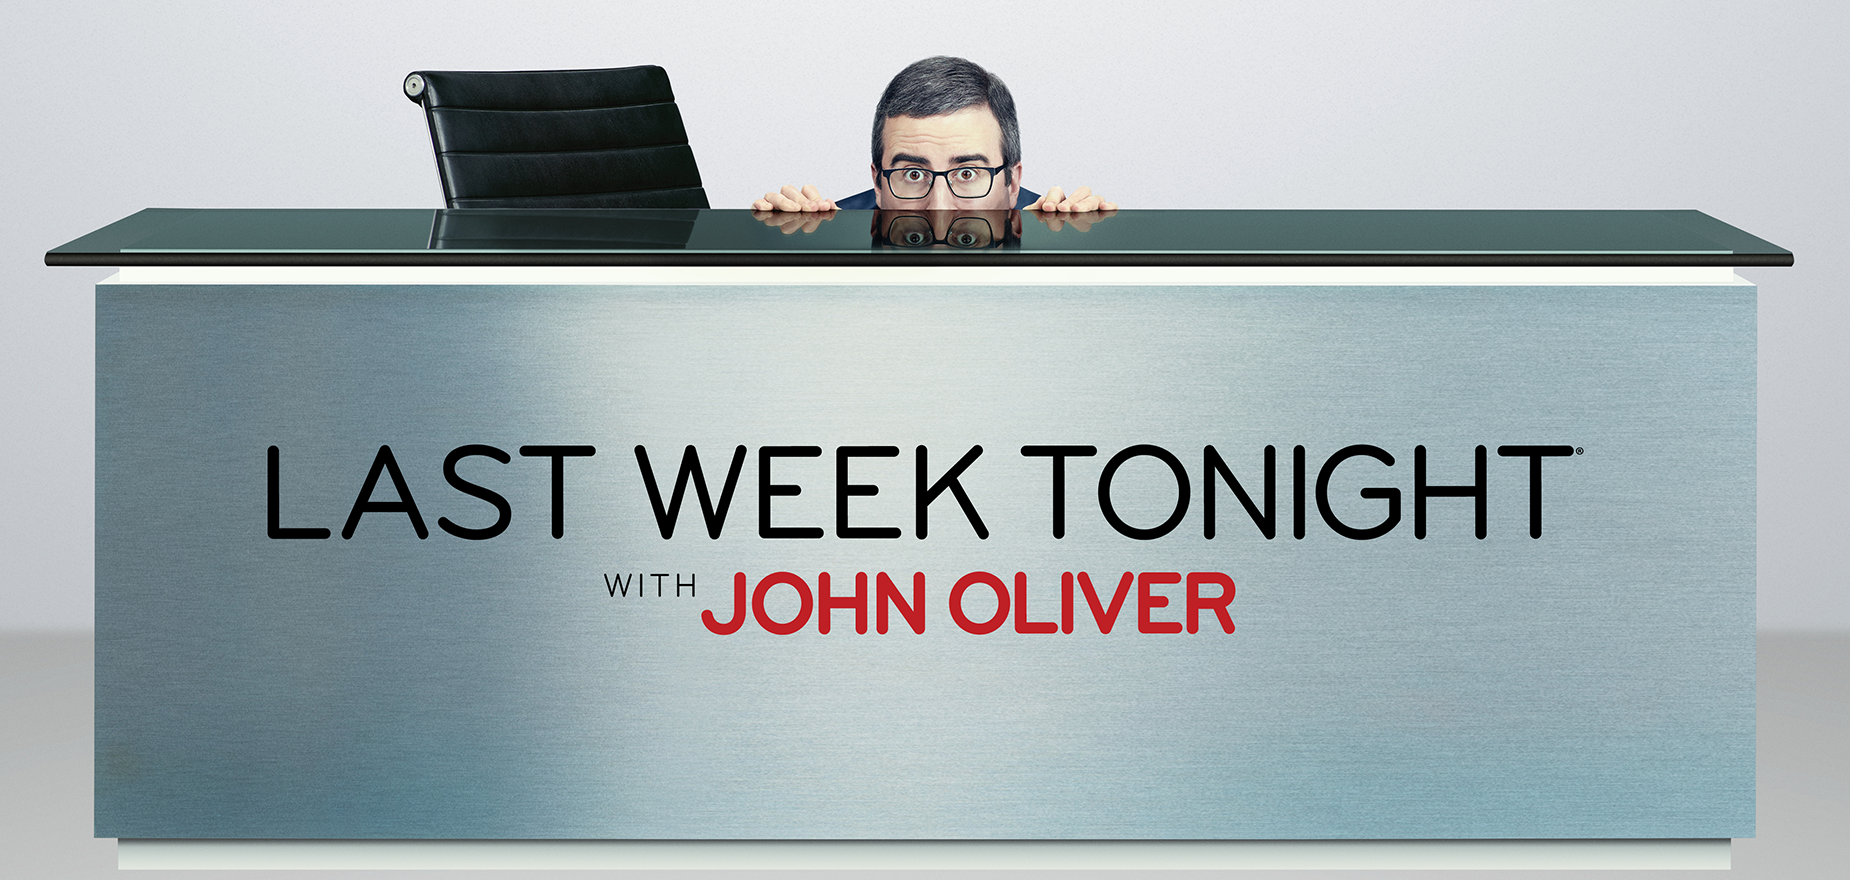 Last Week Tonight with John Oliver - HBO Entertainment in association with Sixteen String Jack Productions and Avalon Television